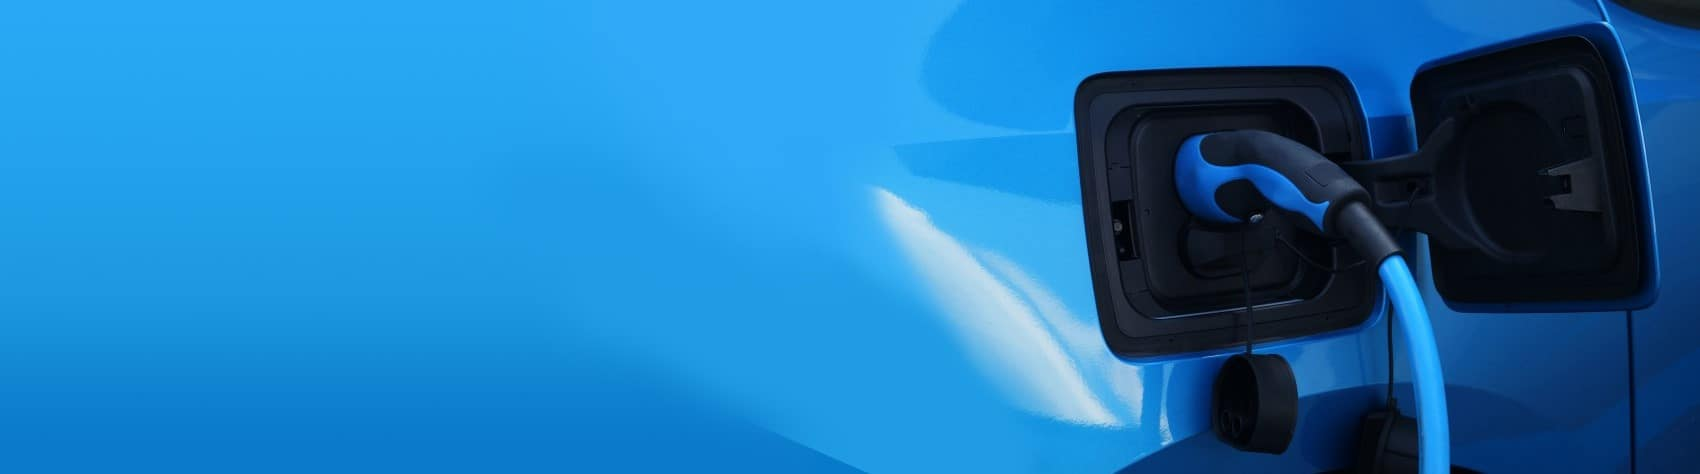 Close up electric vehicle charging blue banner